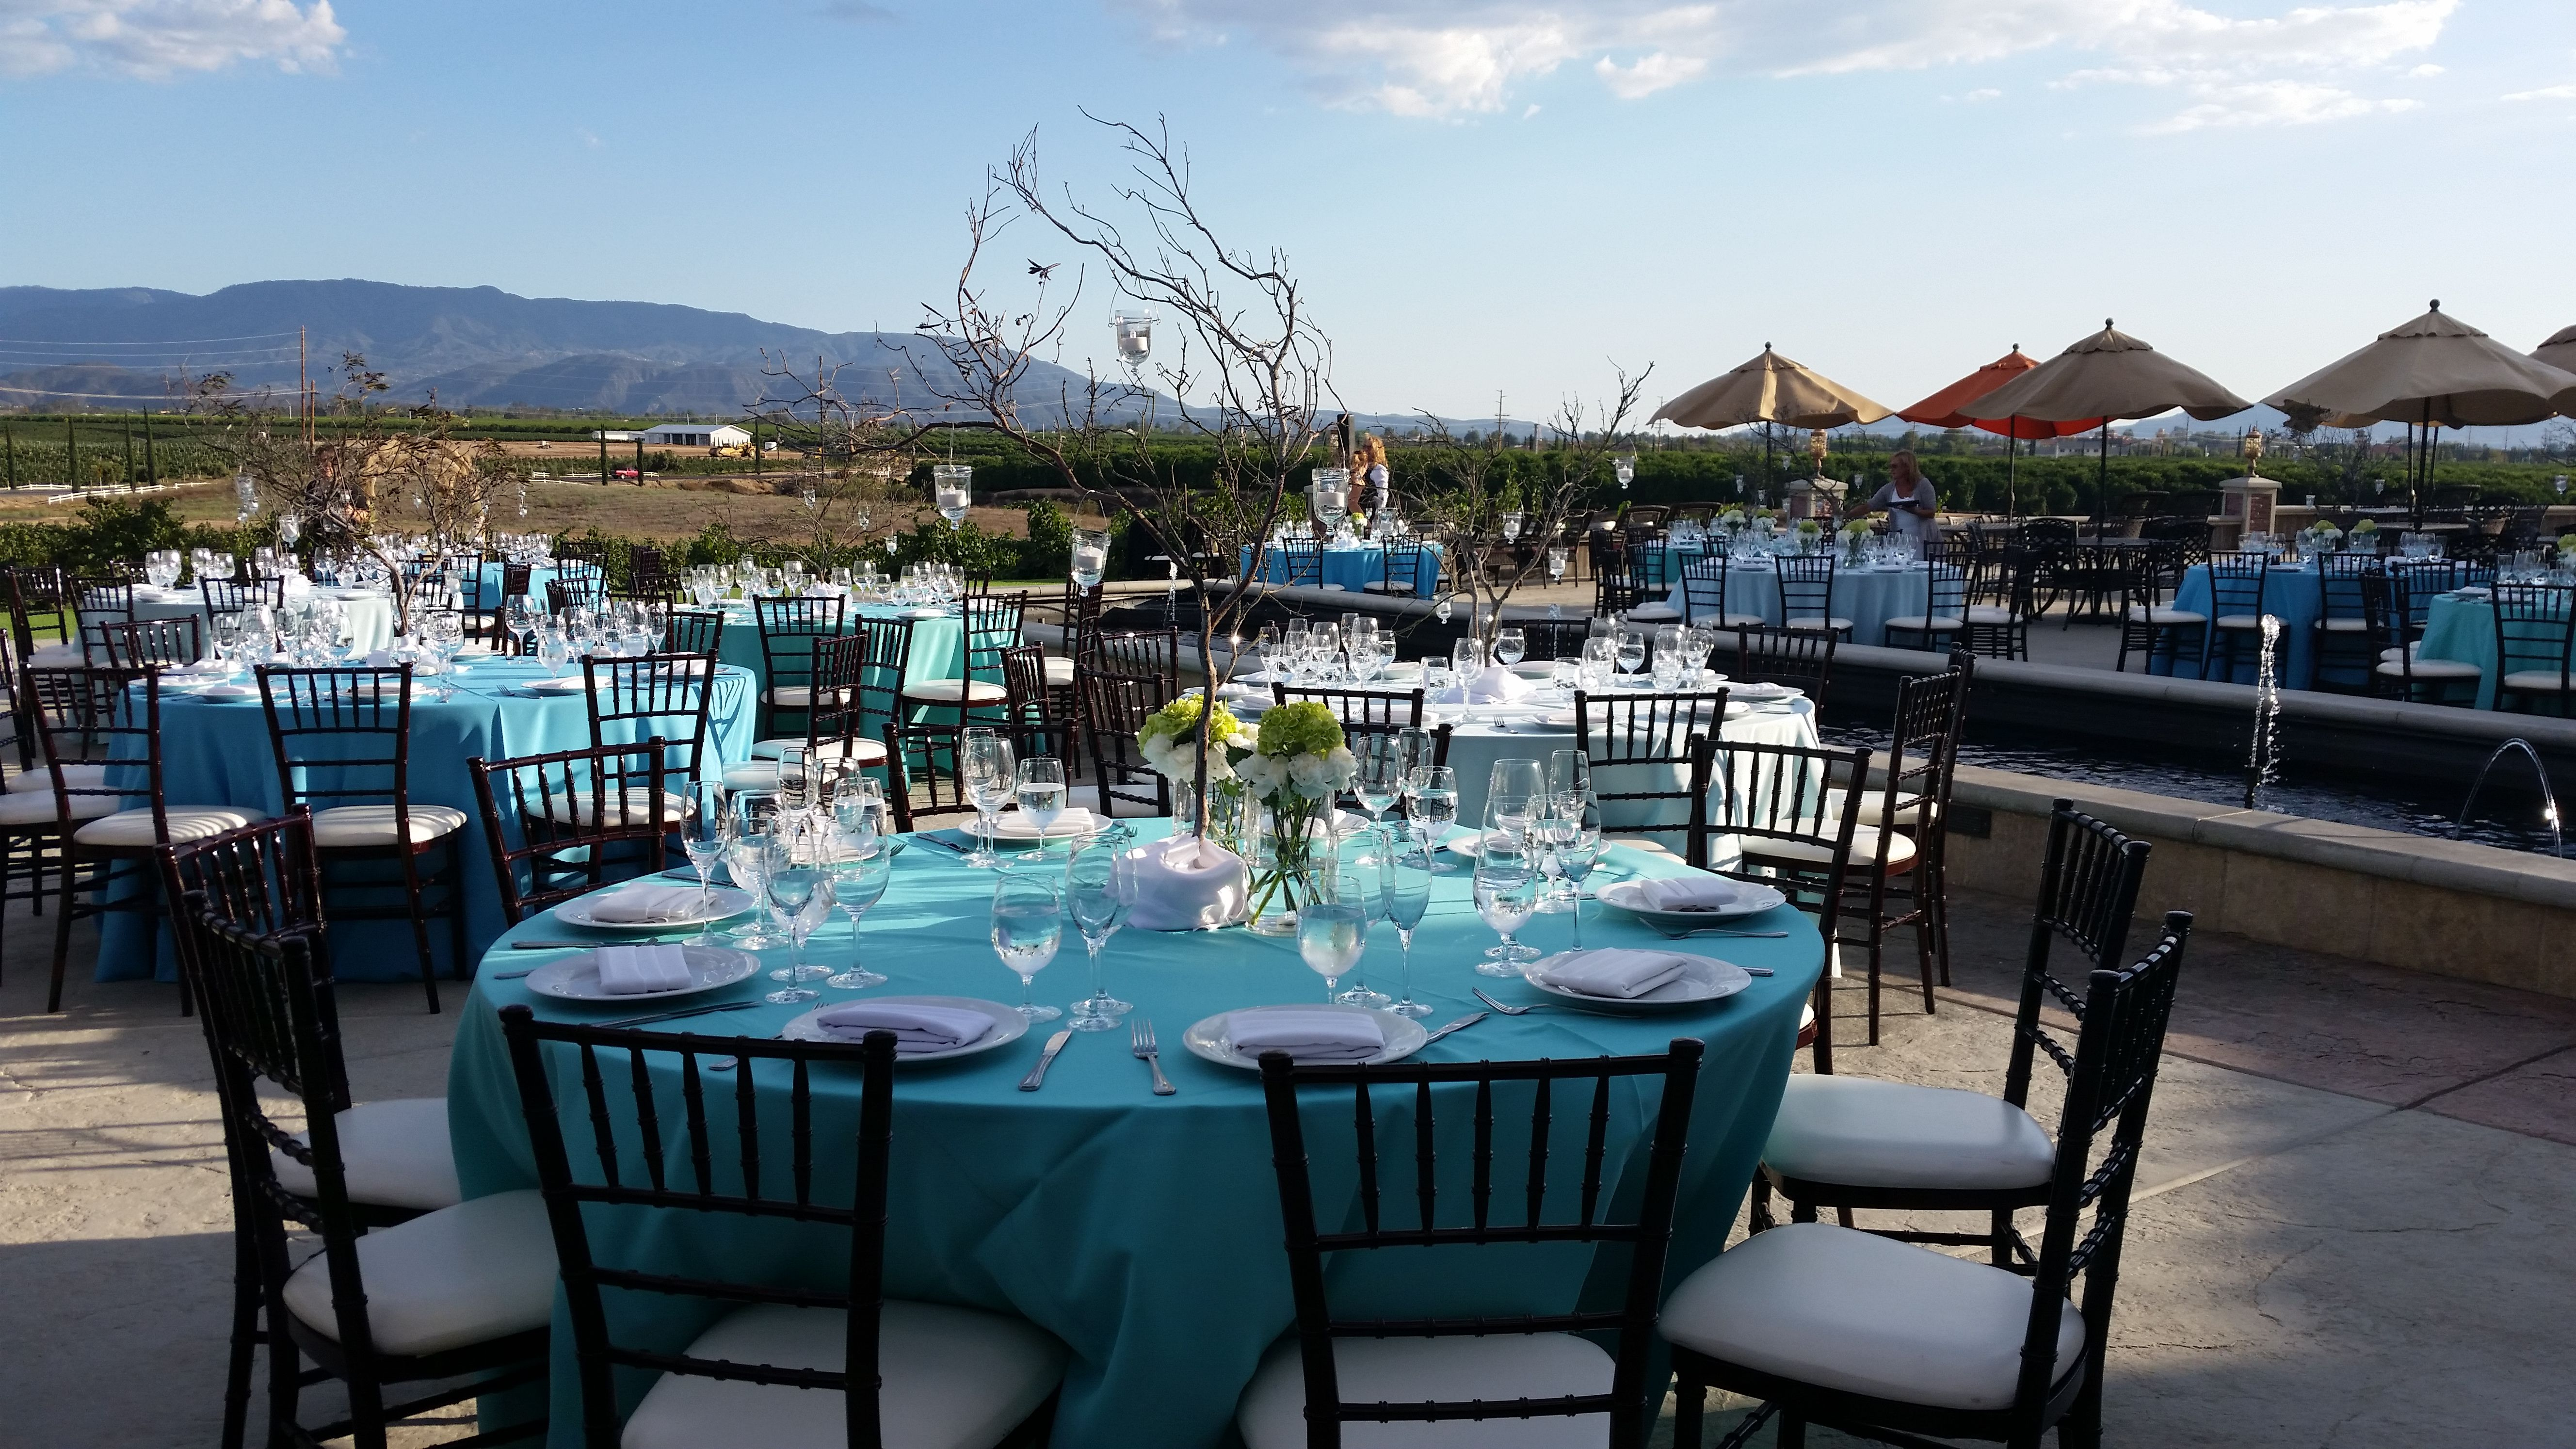 A pop of blues among all the green vineyards | Wedding designs ...